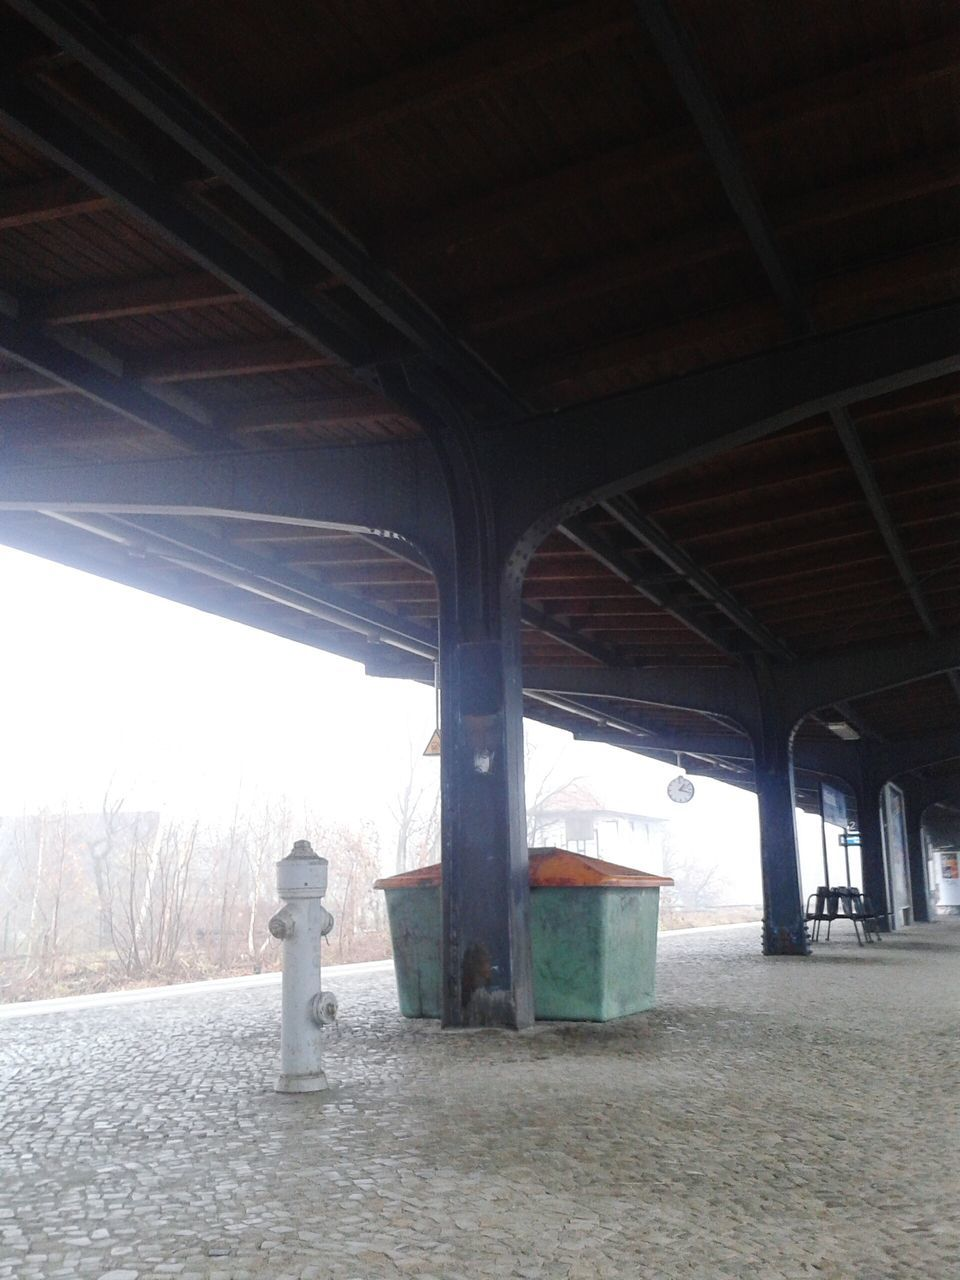 rear view, one person, day, full length, winter, real people, indoors, cold temperature, built structure, transportation, architecture, standing, architectural column, sky, snow, men, nature, under, people